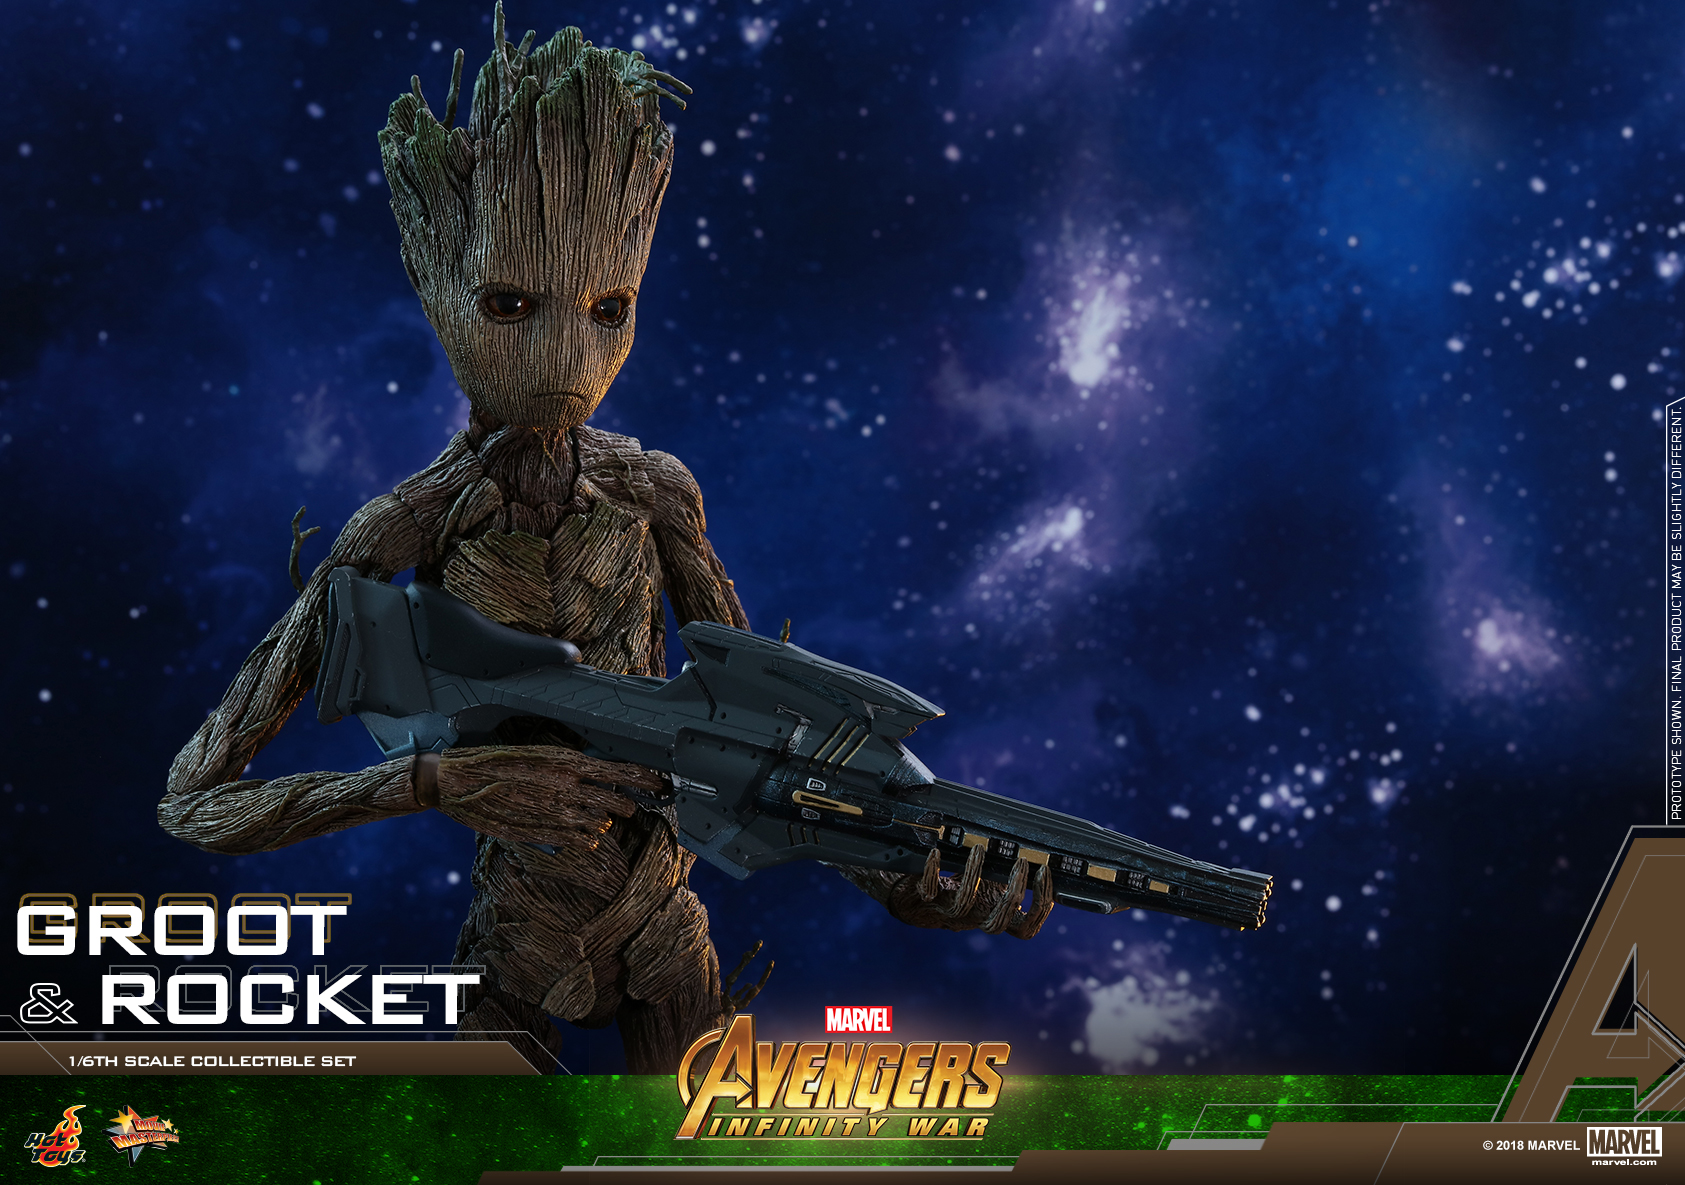 Hot Toys - AIW - Groot & Rocket collectible set_PR21